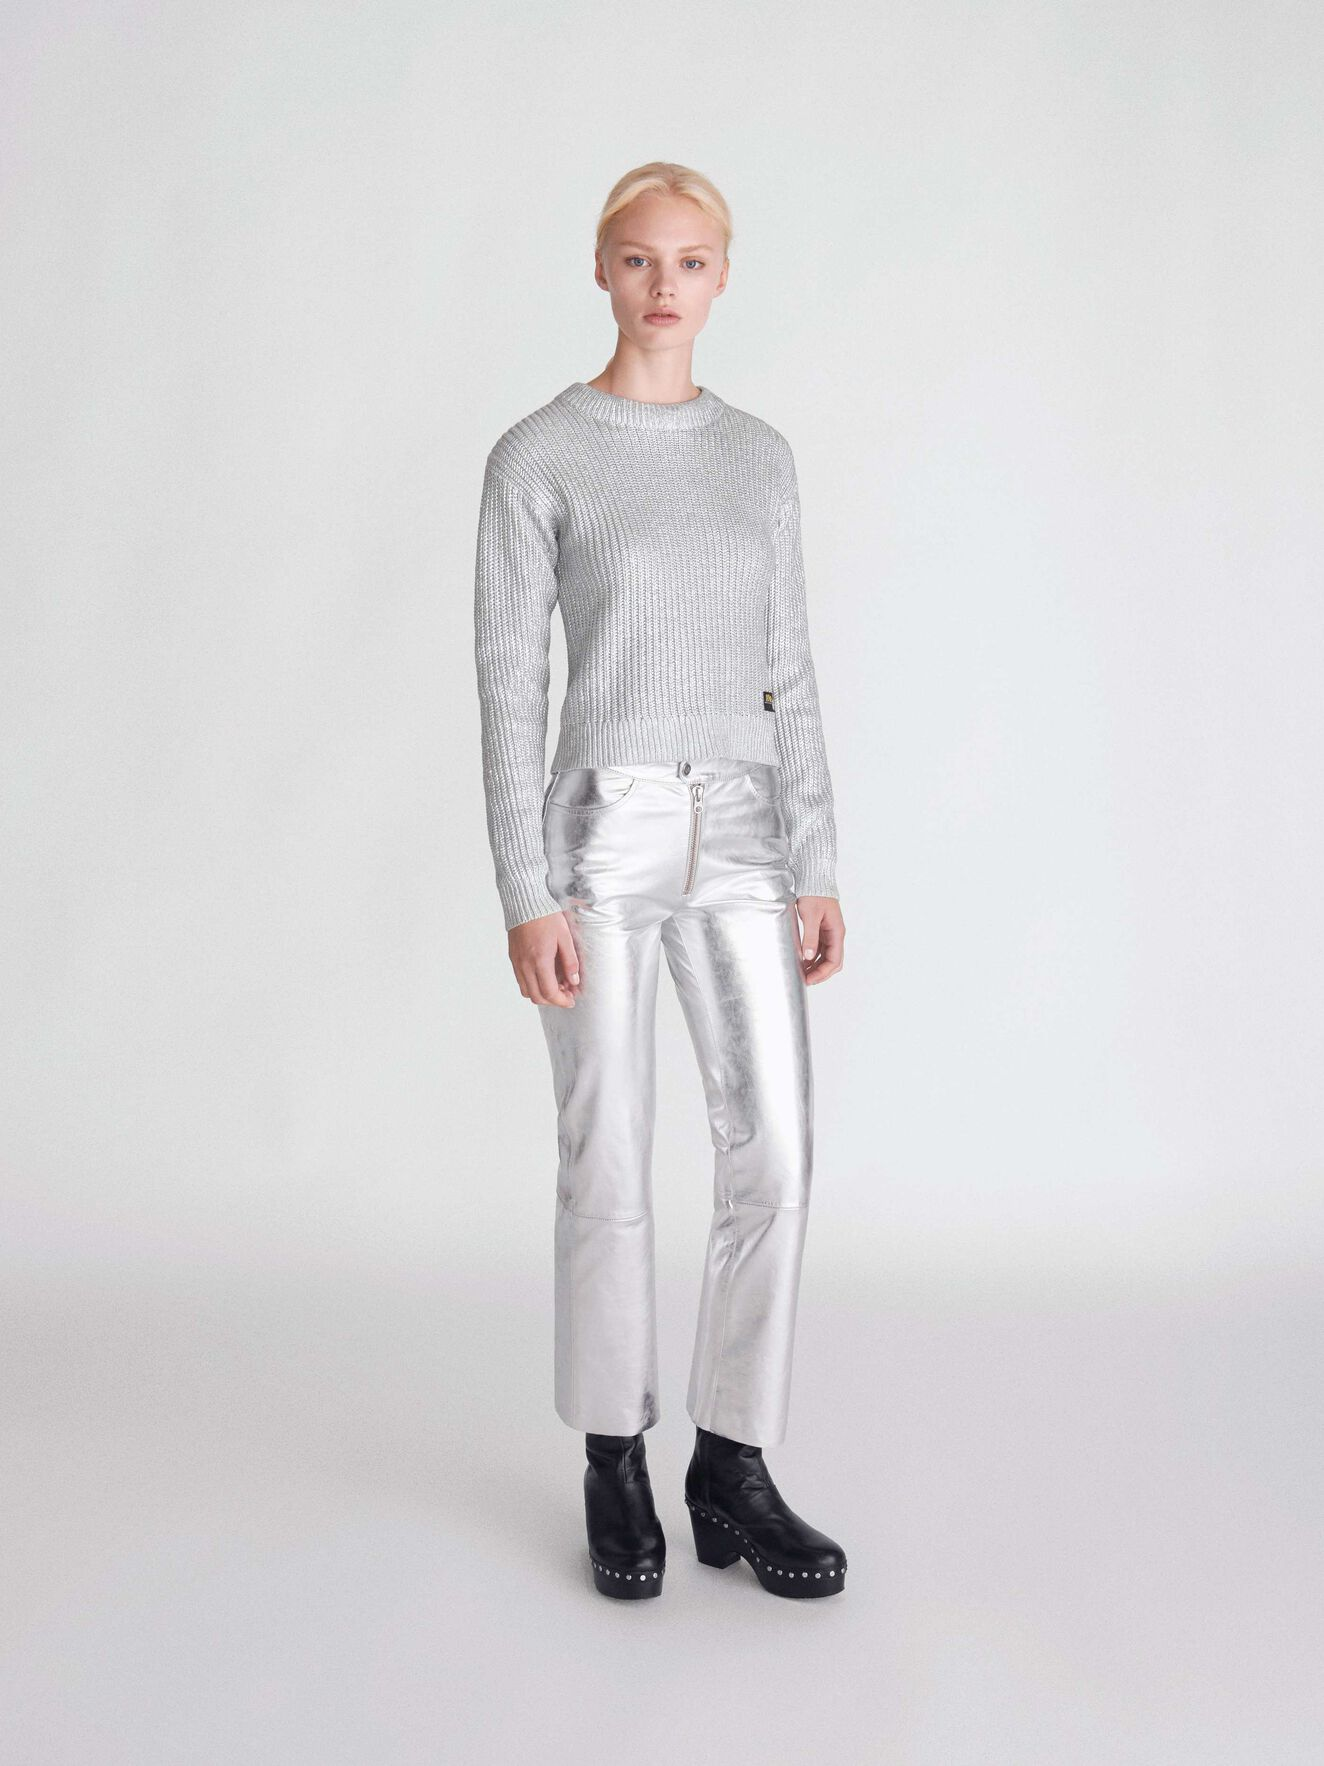 Zandy S Trousers in Mercury Grey from Tiger of Sweden